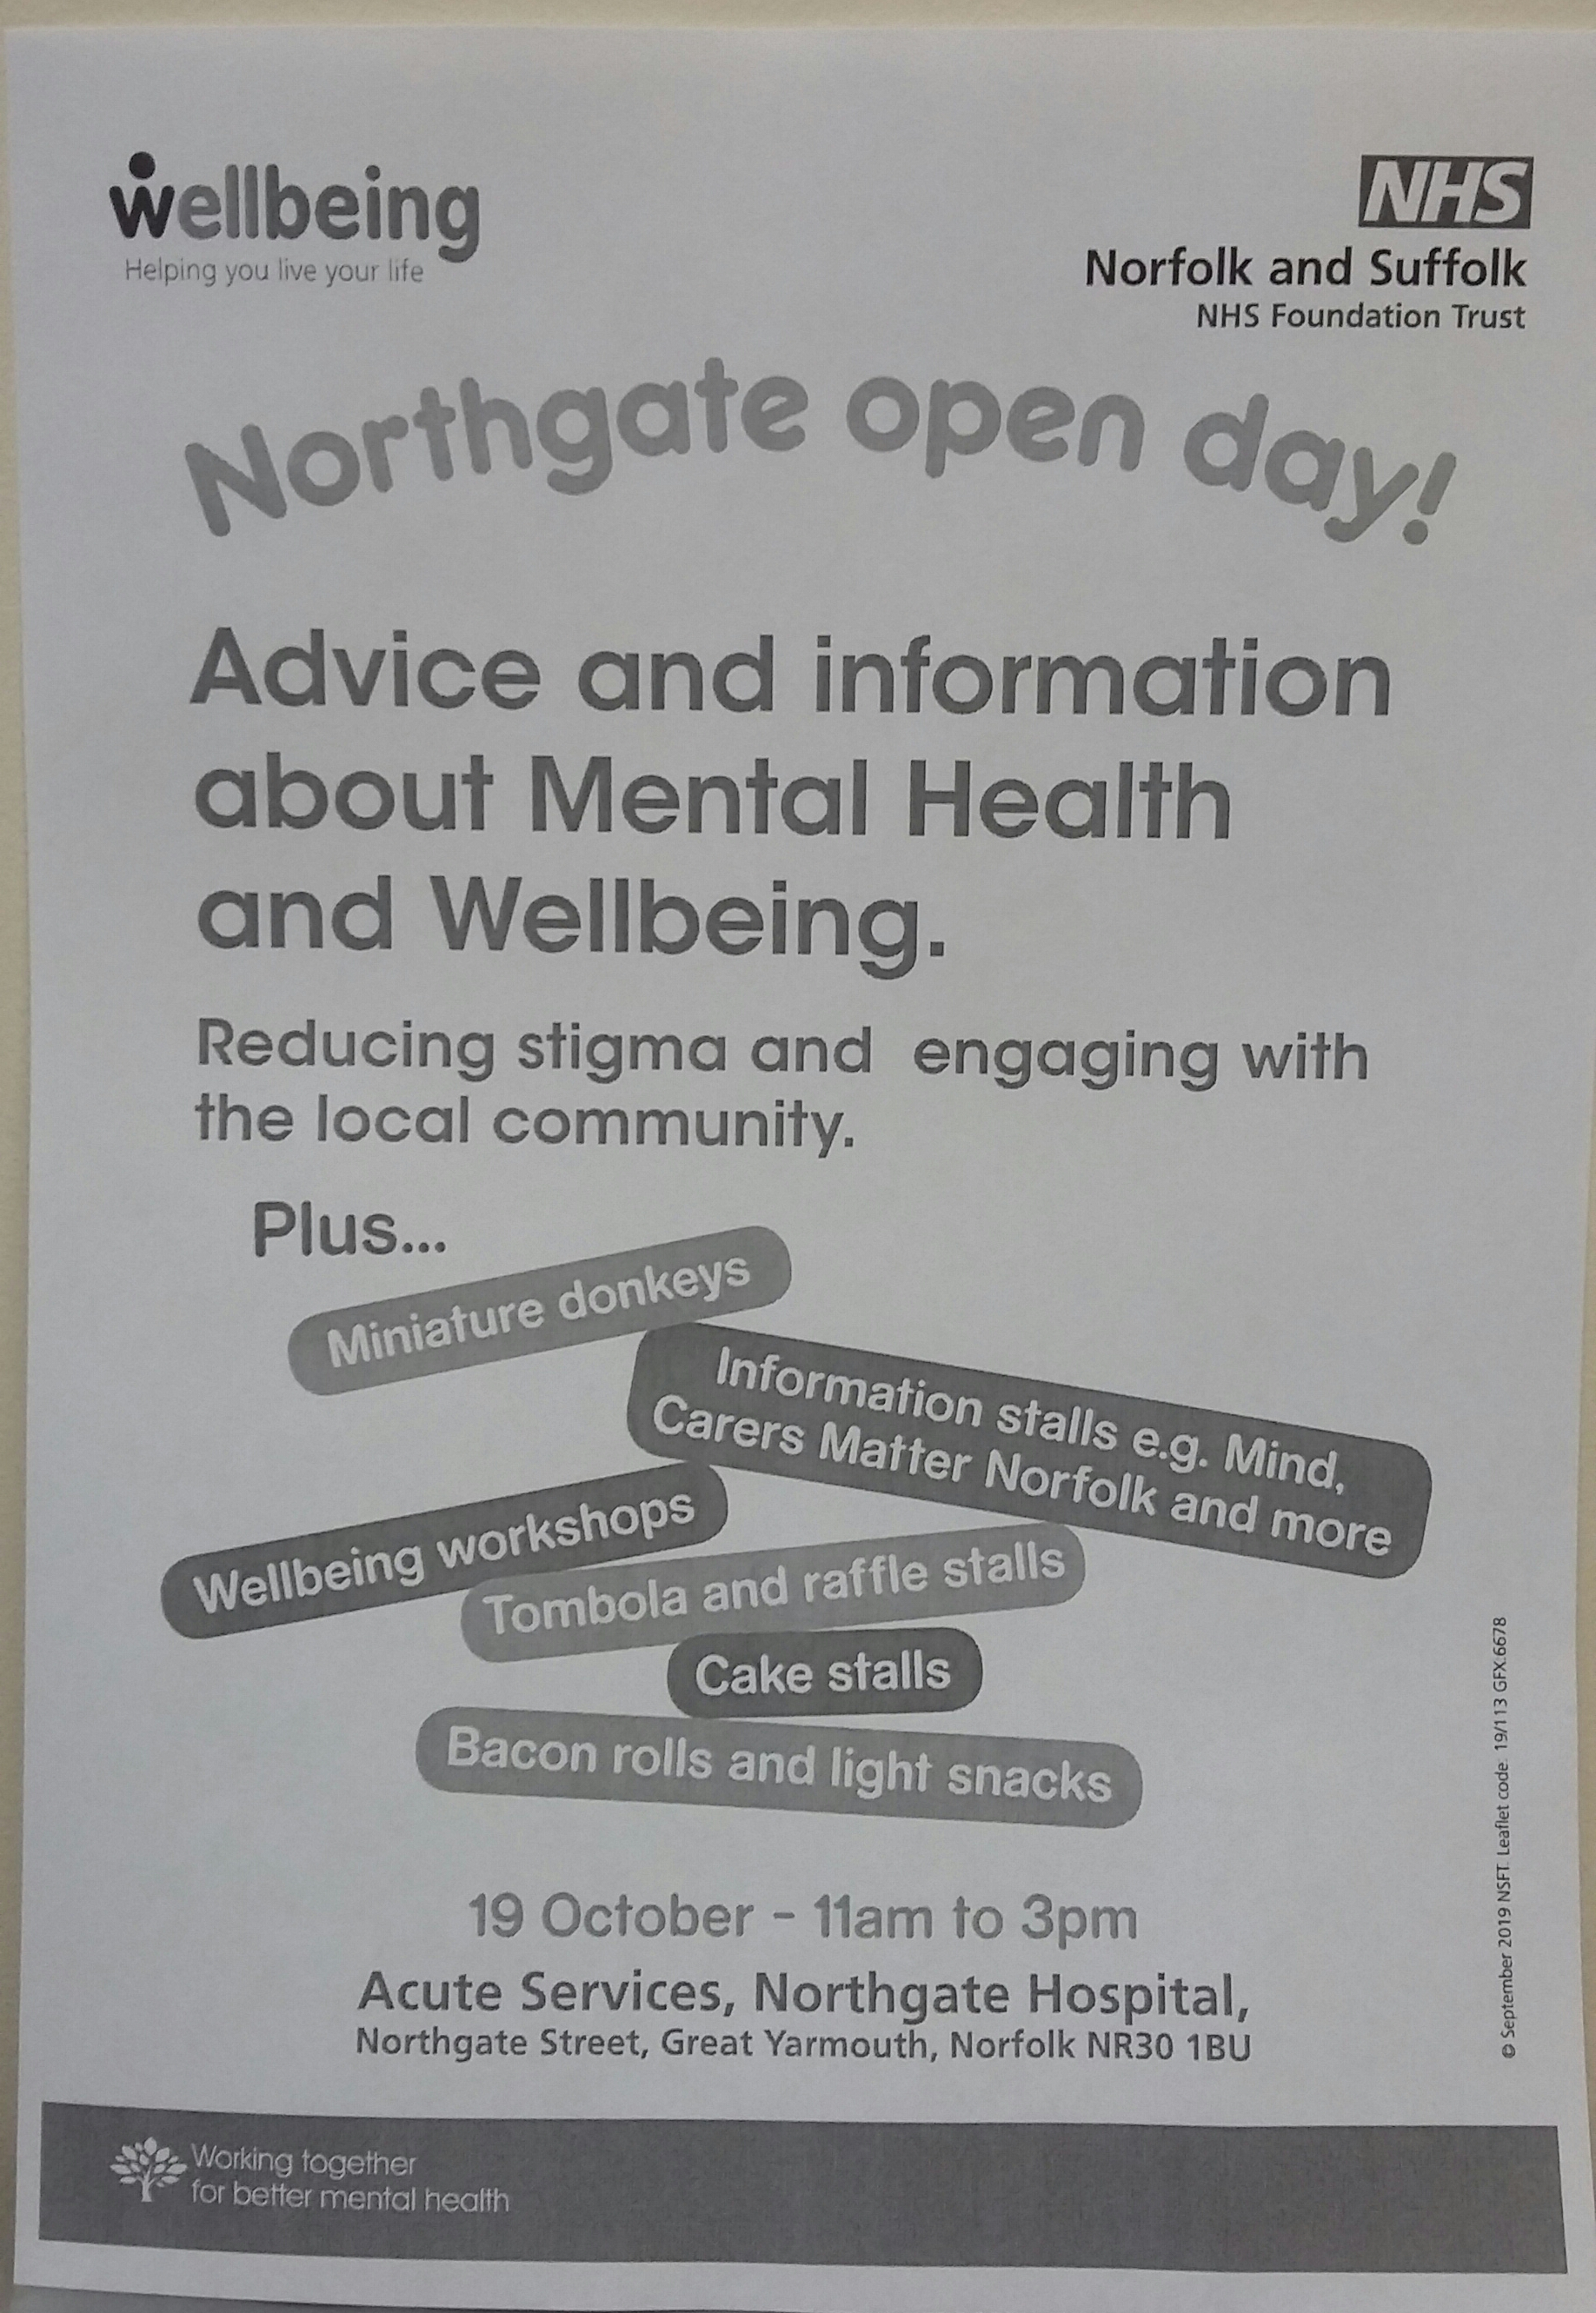 Northgate Open Day 19-10-19.jpg